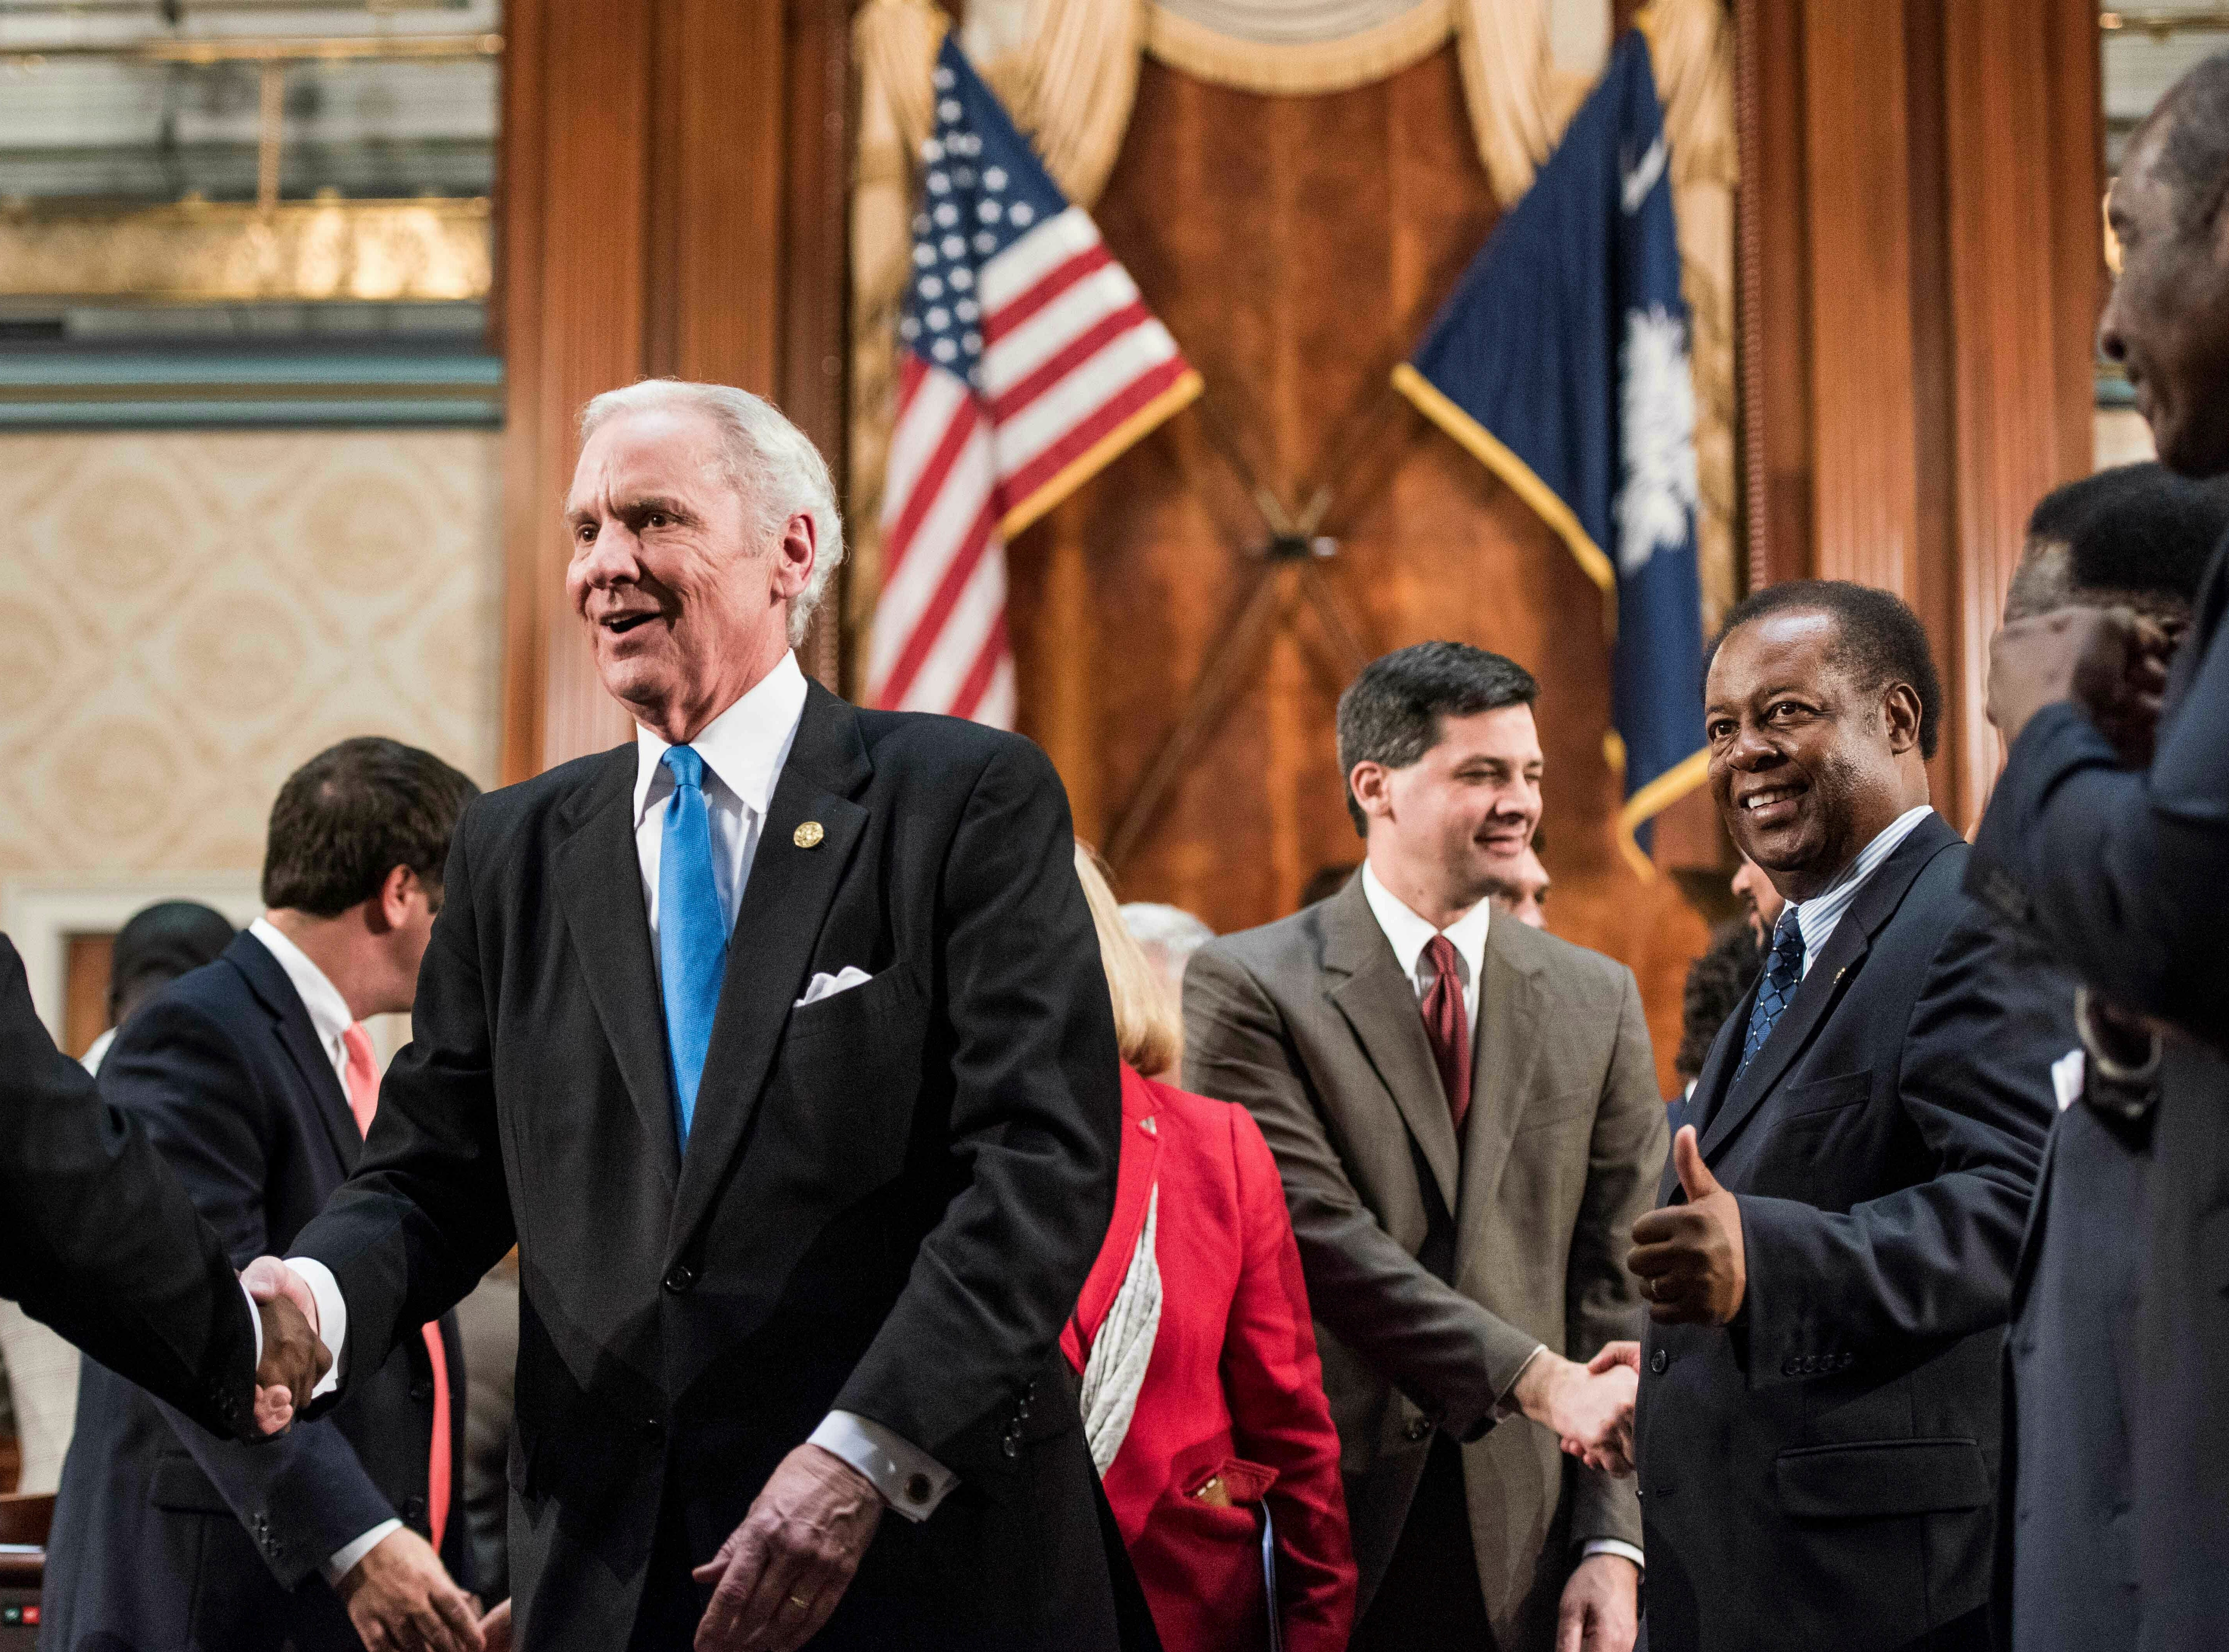 South Carolina Governor Henry McMaster greets lawmakers after delivering the State of the State address at the South Carolina Statehouse, Wednesday, Jan. 23, 2019, in Columbia, S.C. (AP Photo/Sean Rayford)